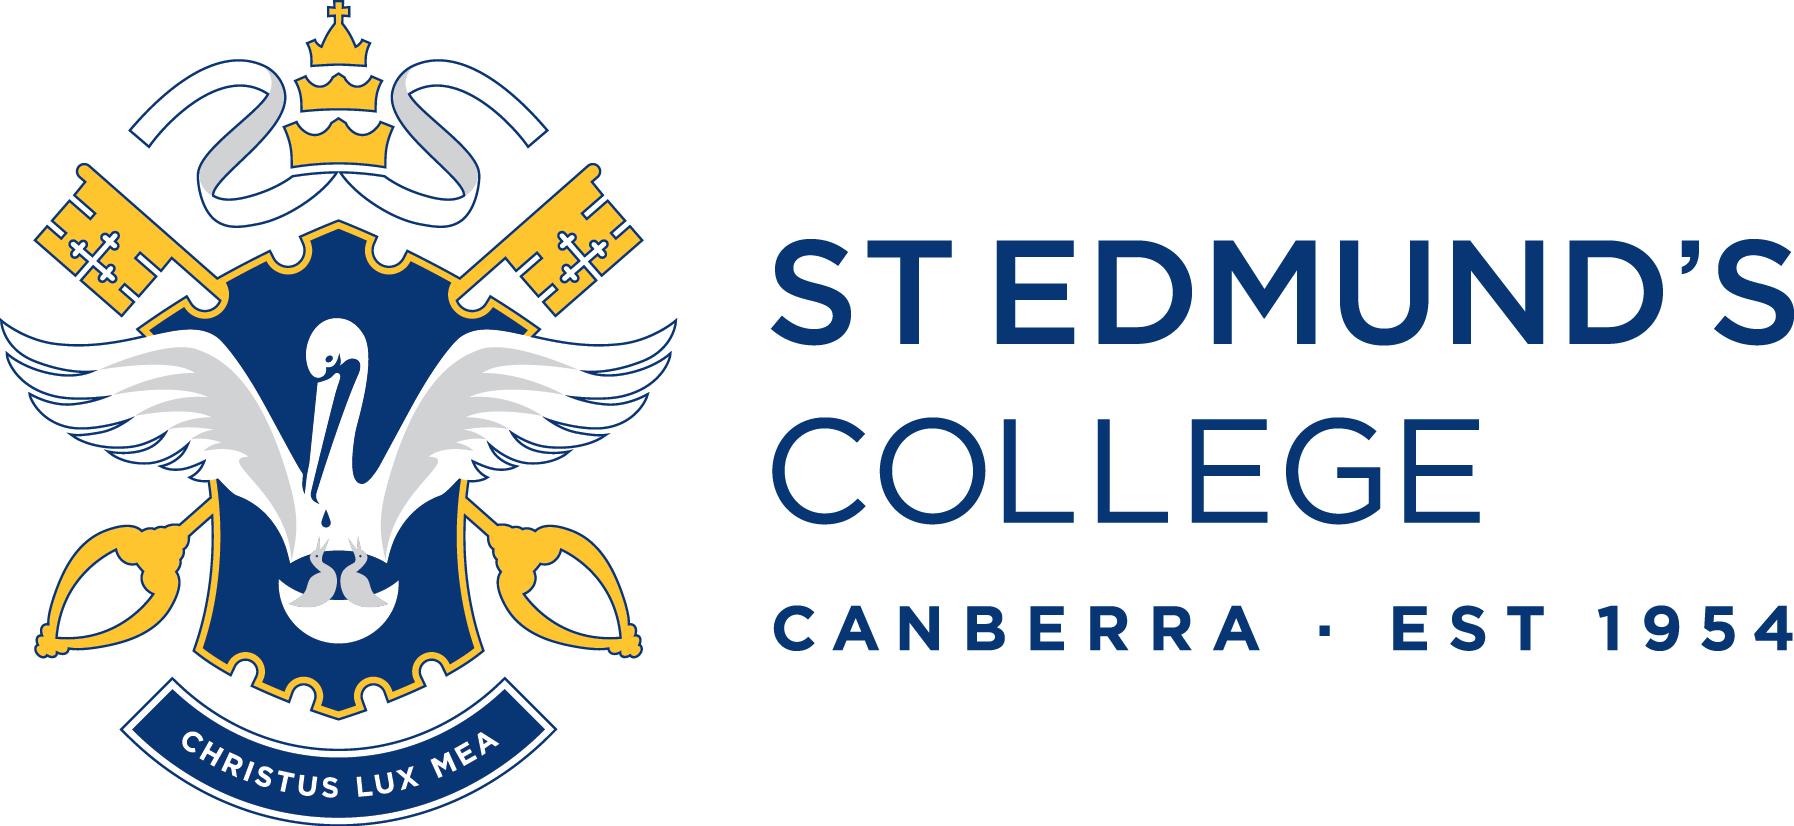 St Edmund's College Canberra - Melbourne Private Schools